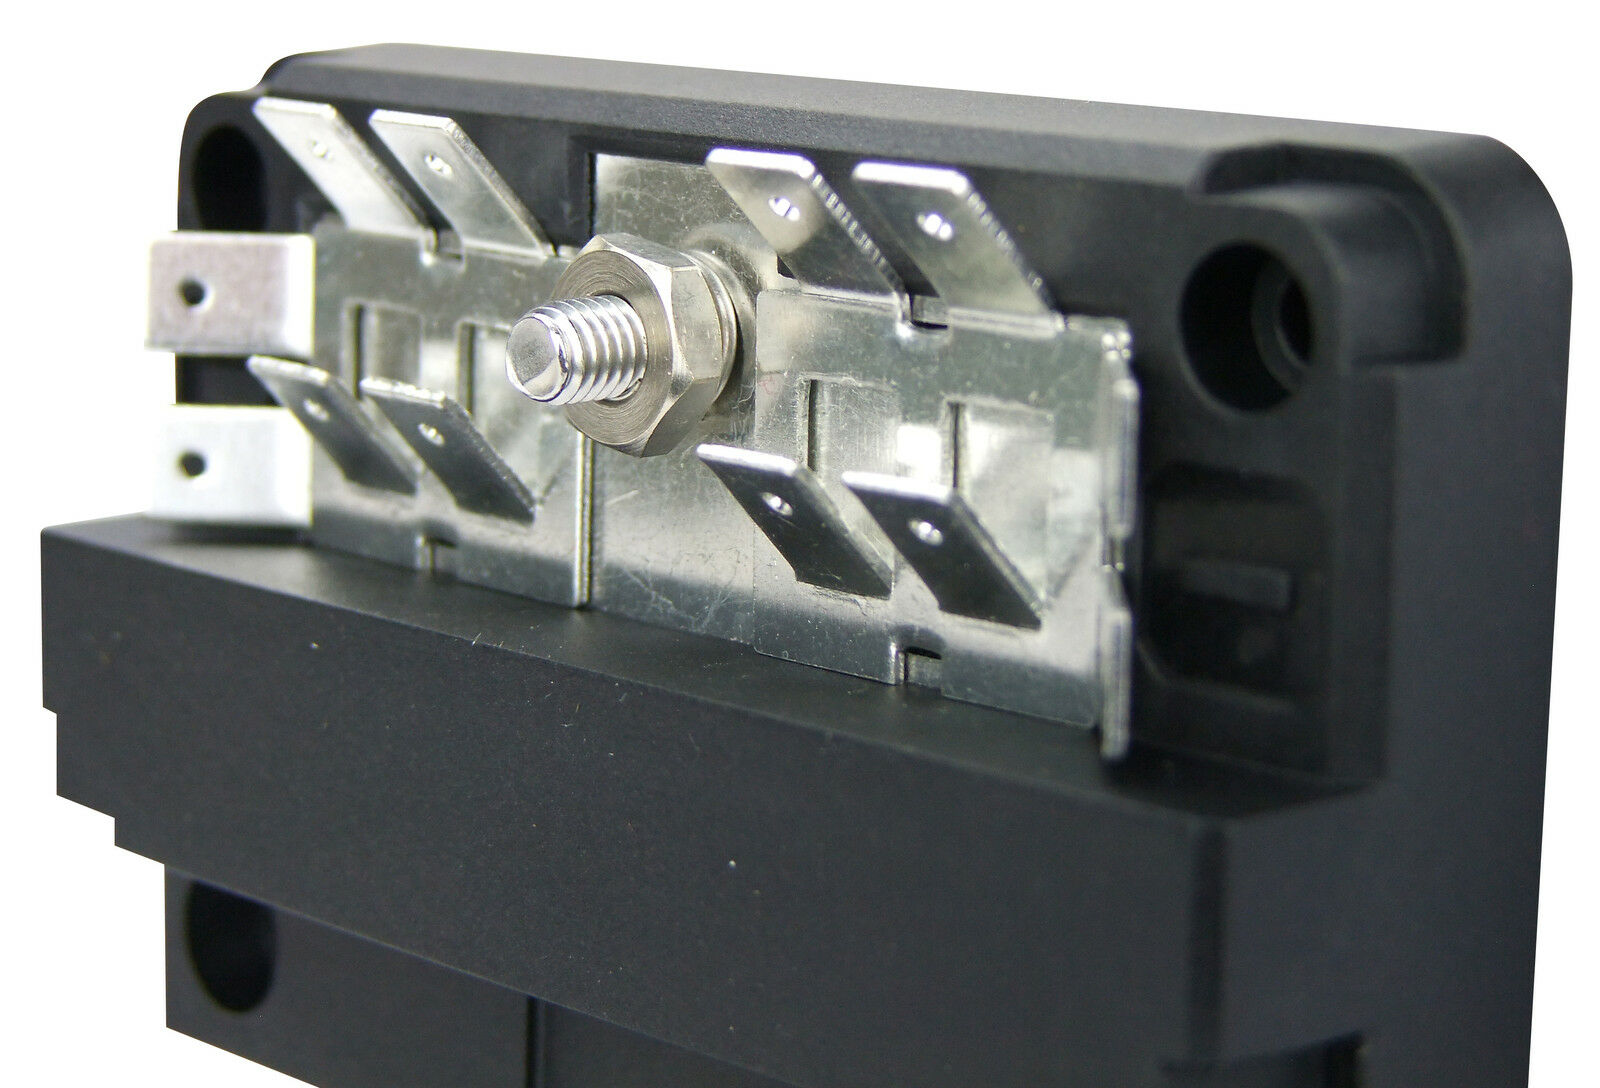 buss bar 12 way with 6 circuit fuse box modular kit 12v ... 6 fuse junction box 12 volt ford f650 dump fuse junction box